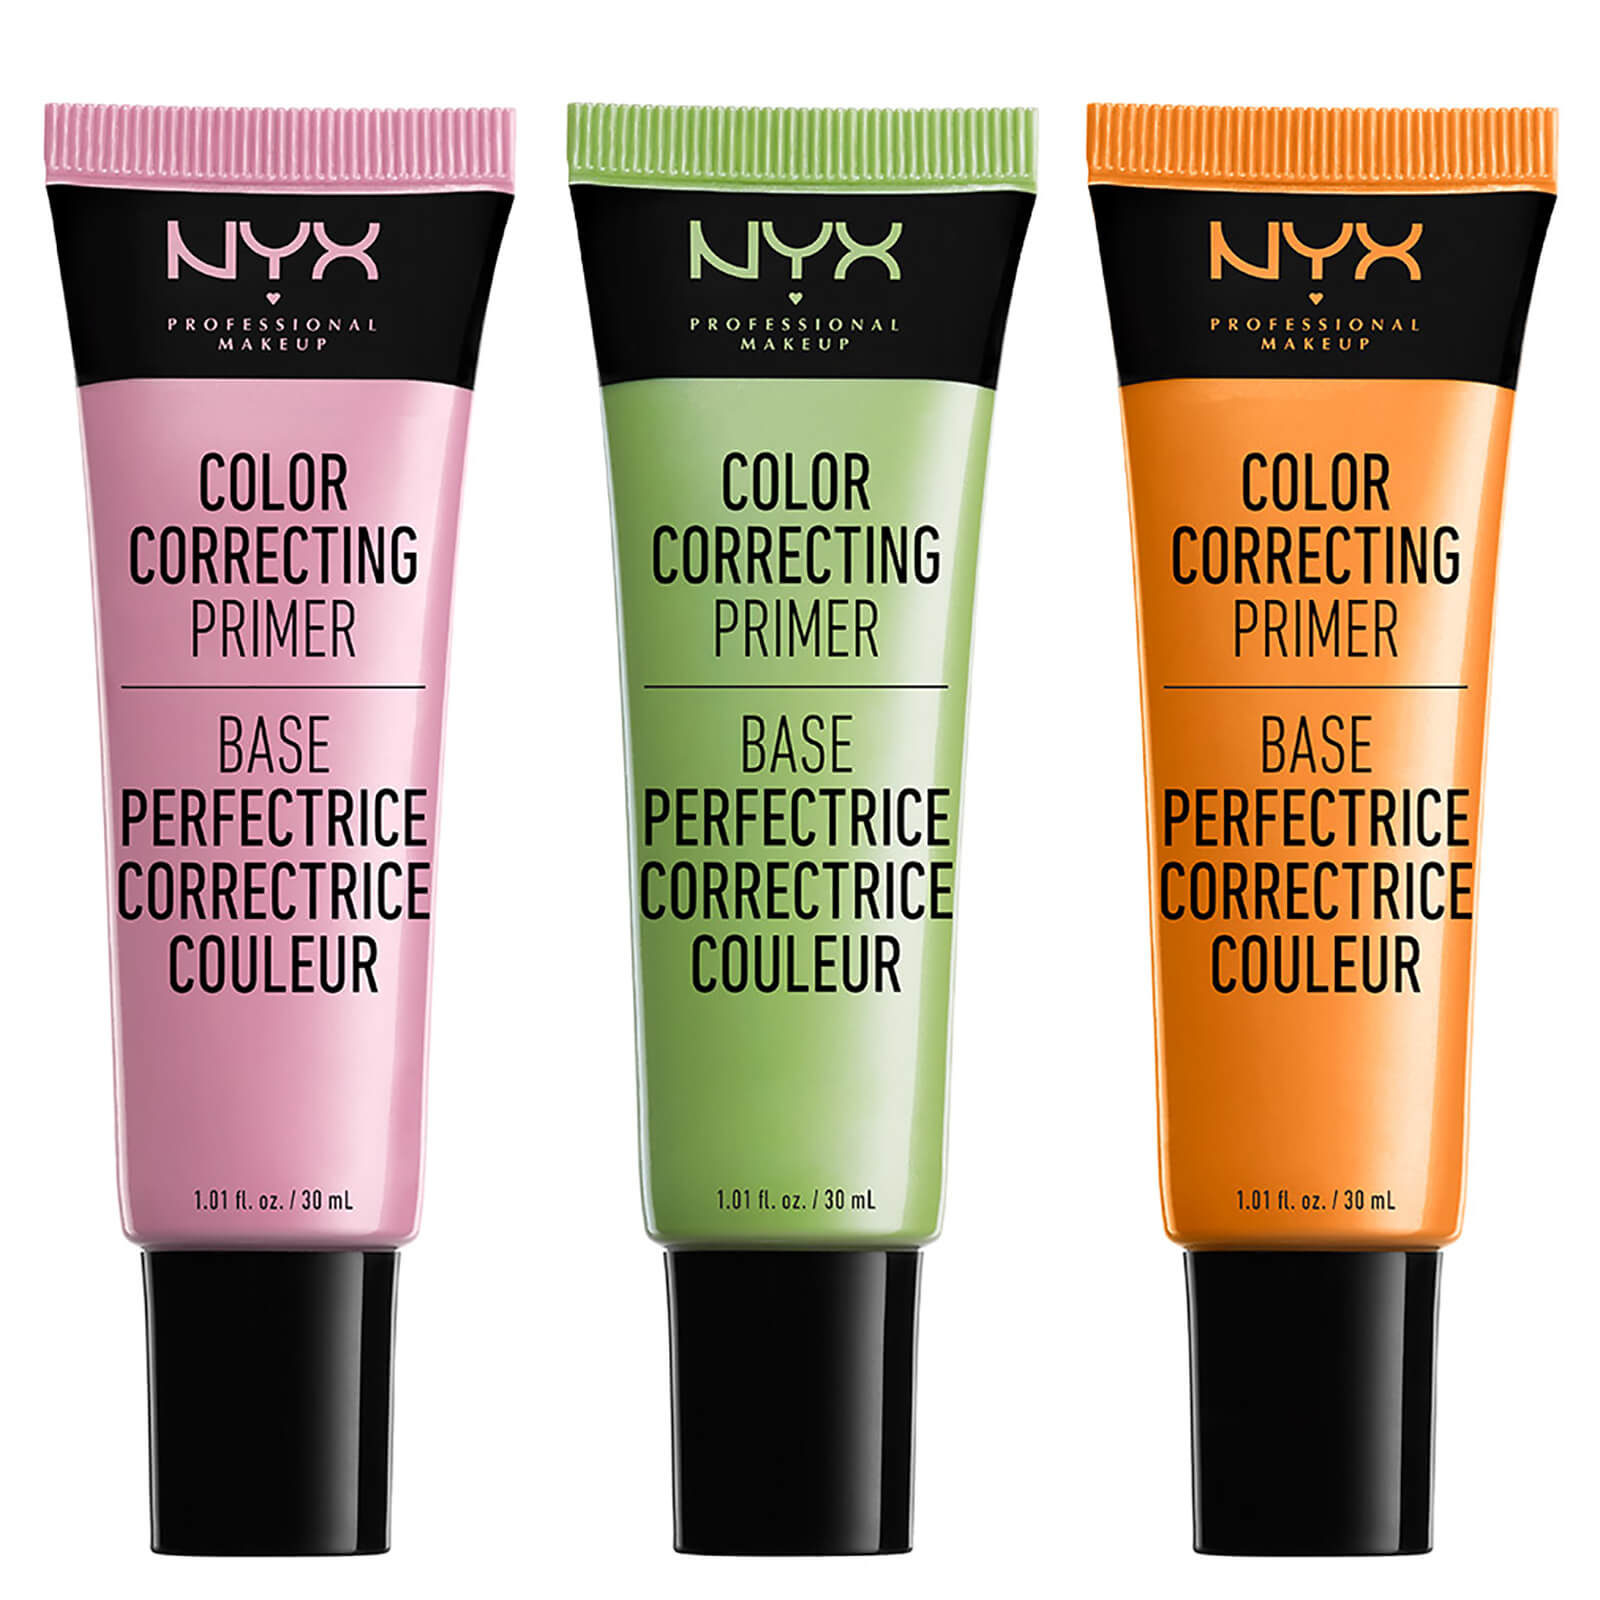 NYX Professional Makeup Color Correcting Liquid Primer